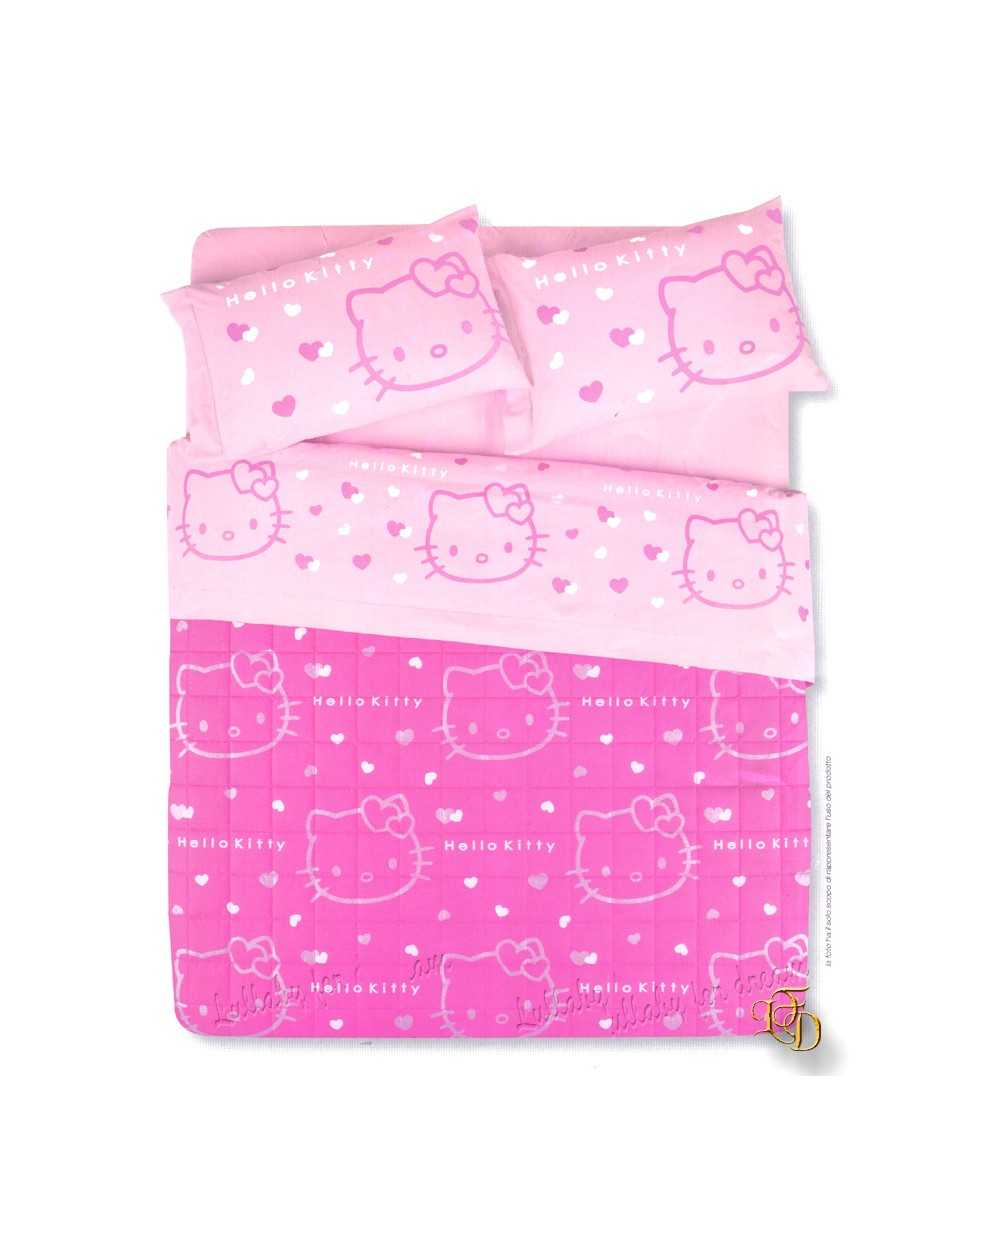 Trapunta Hello Kitty Gabel.Trapunta Invernale Una Piazza Hello Kitty Out Line